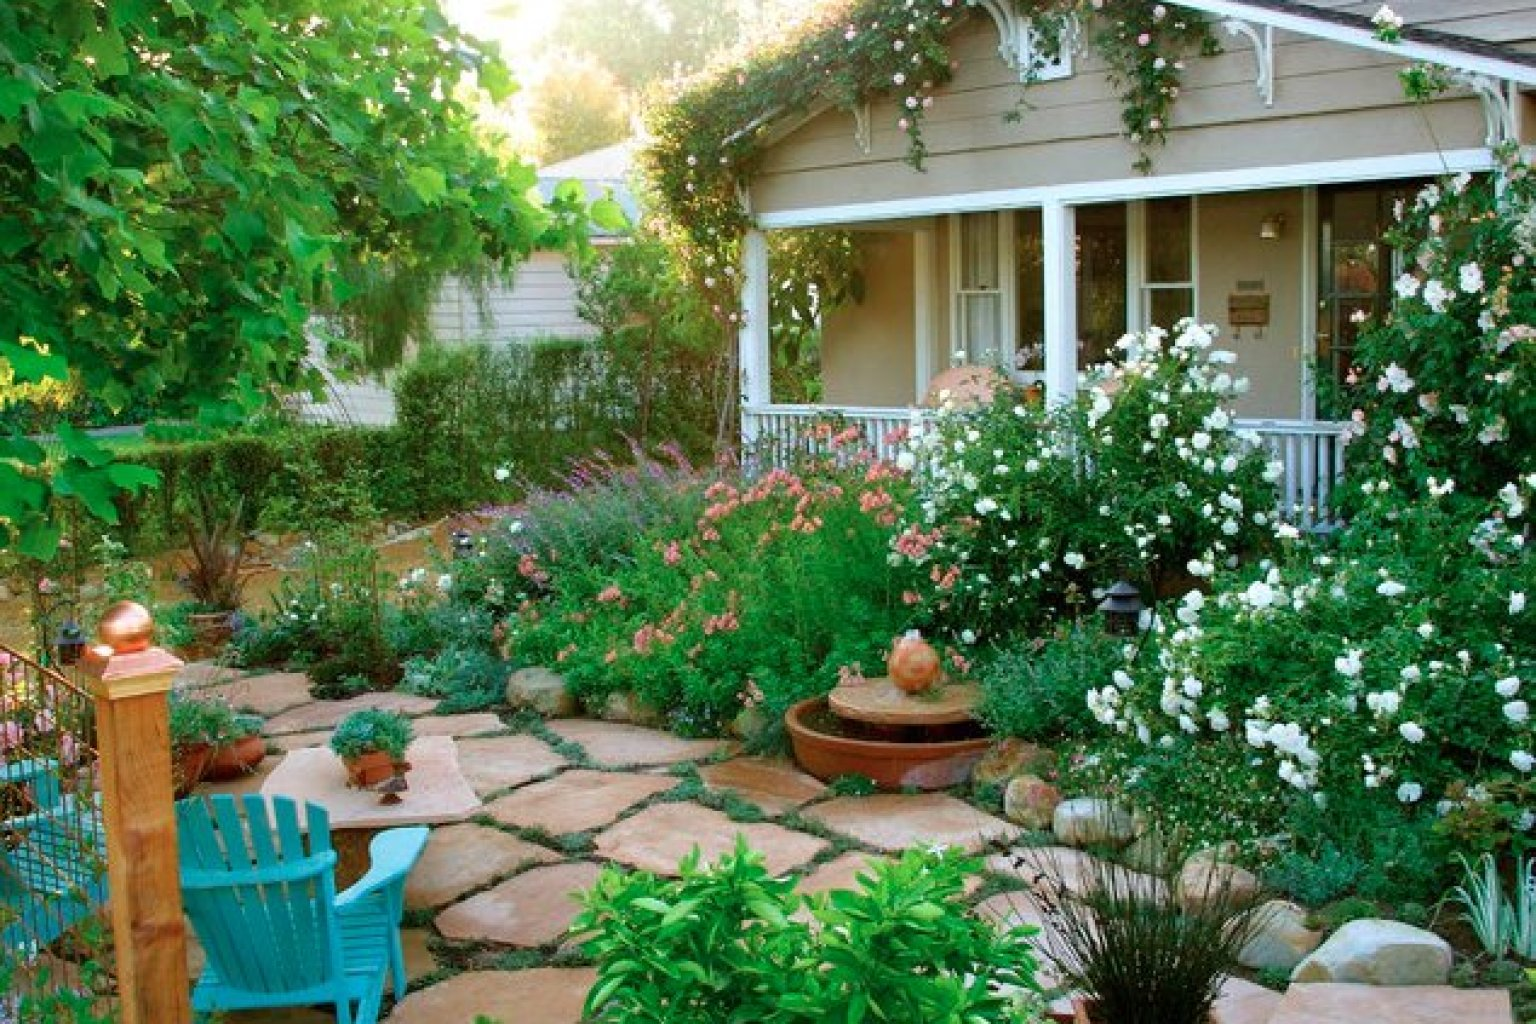 French Cottage Garden Design 10 cottage gardens that are just too charming for words photos huffpost 10 Cottage Gardens That Are Just Too Charming For Words Photos Huffpost